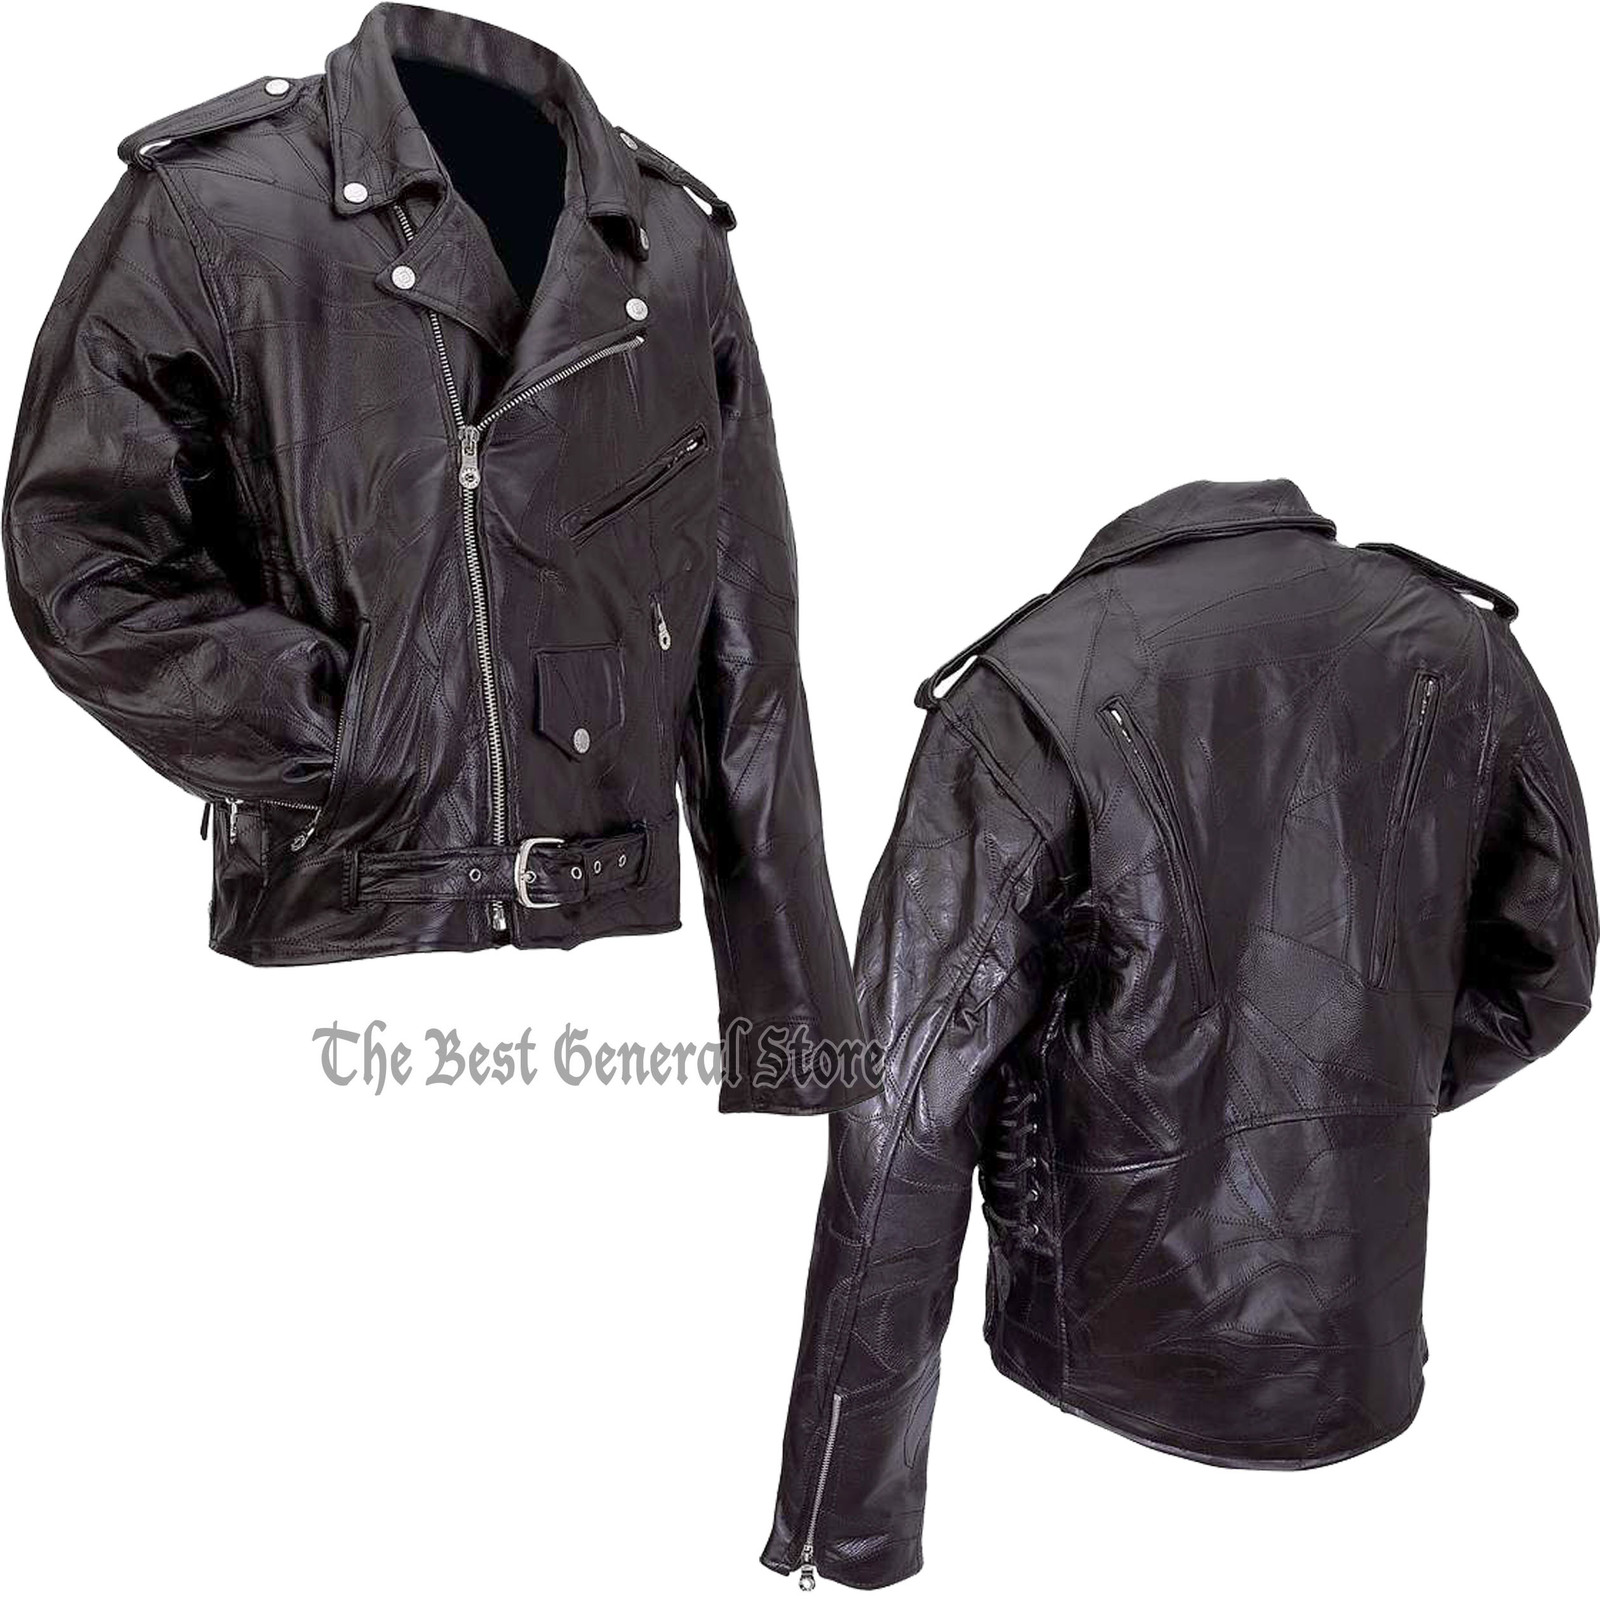 Patchwork leather motorcycle jacket combo gfmot 1800